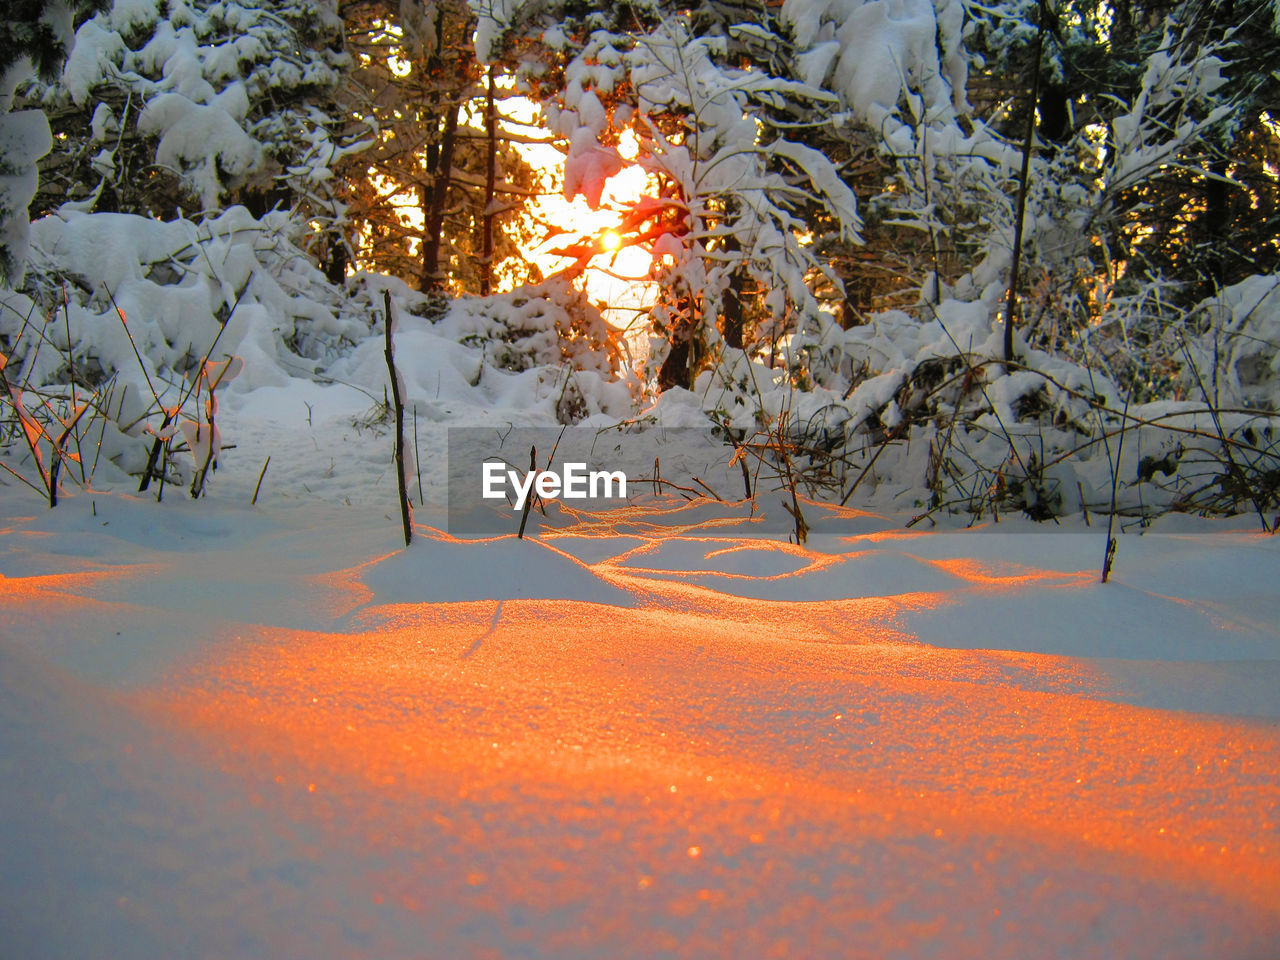 SNOW COVERED LAND AND TREES DURING SUNSET